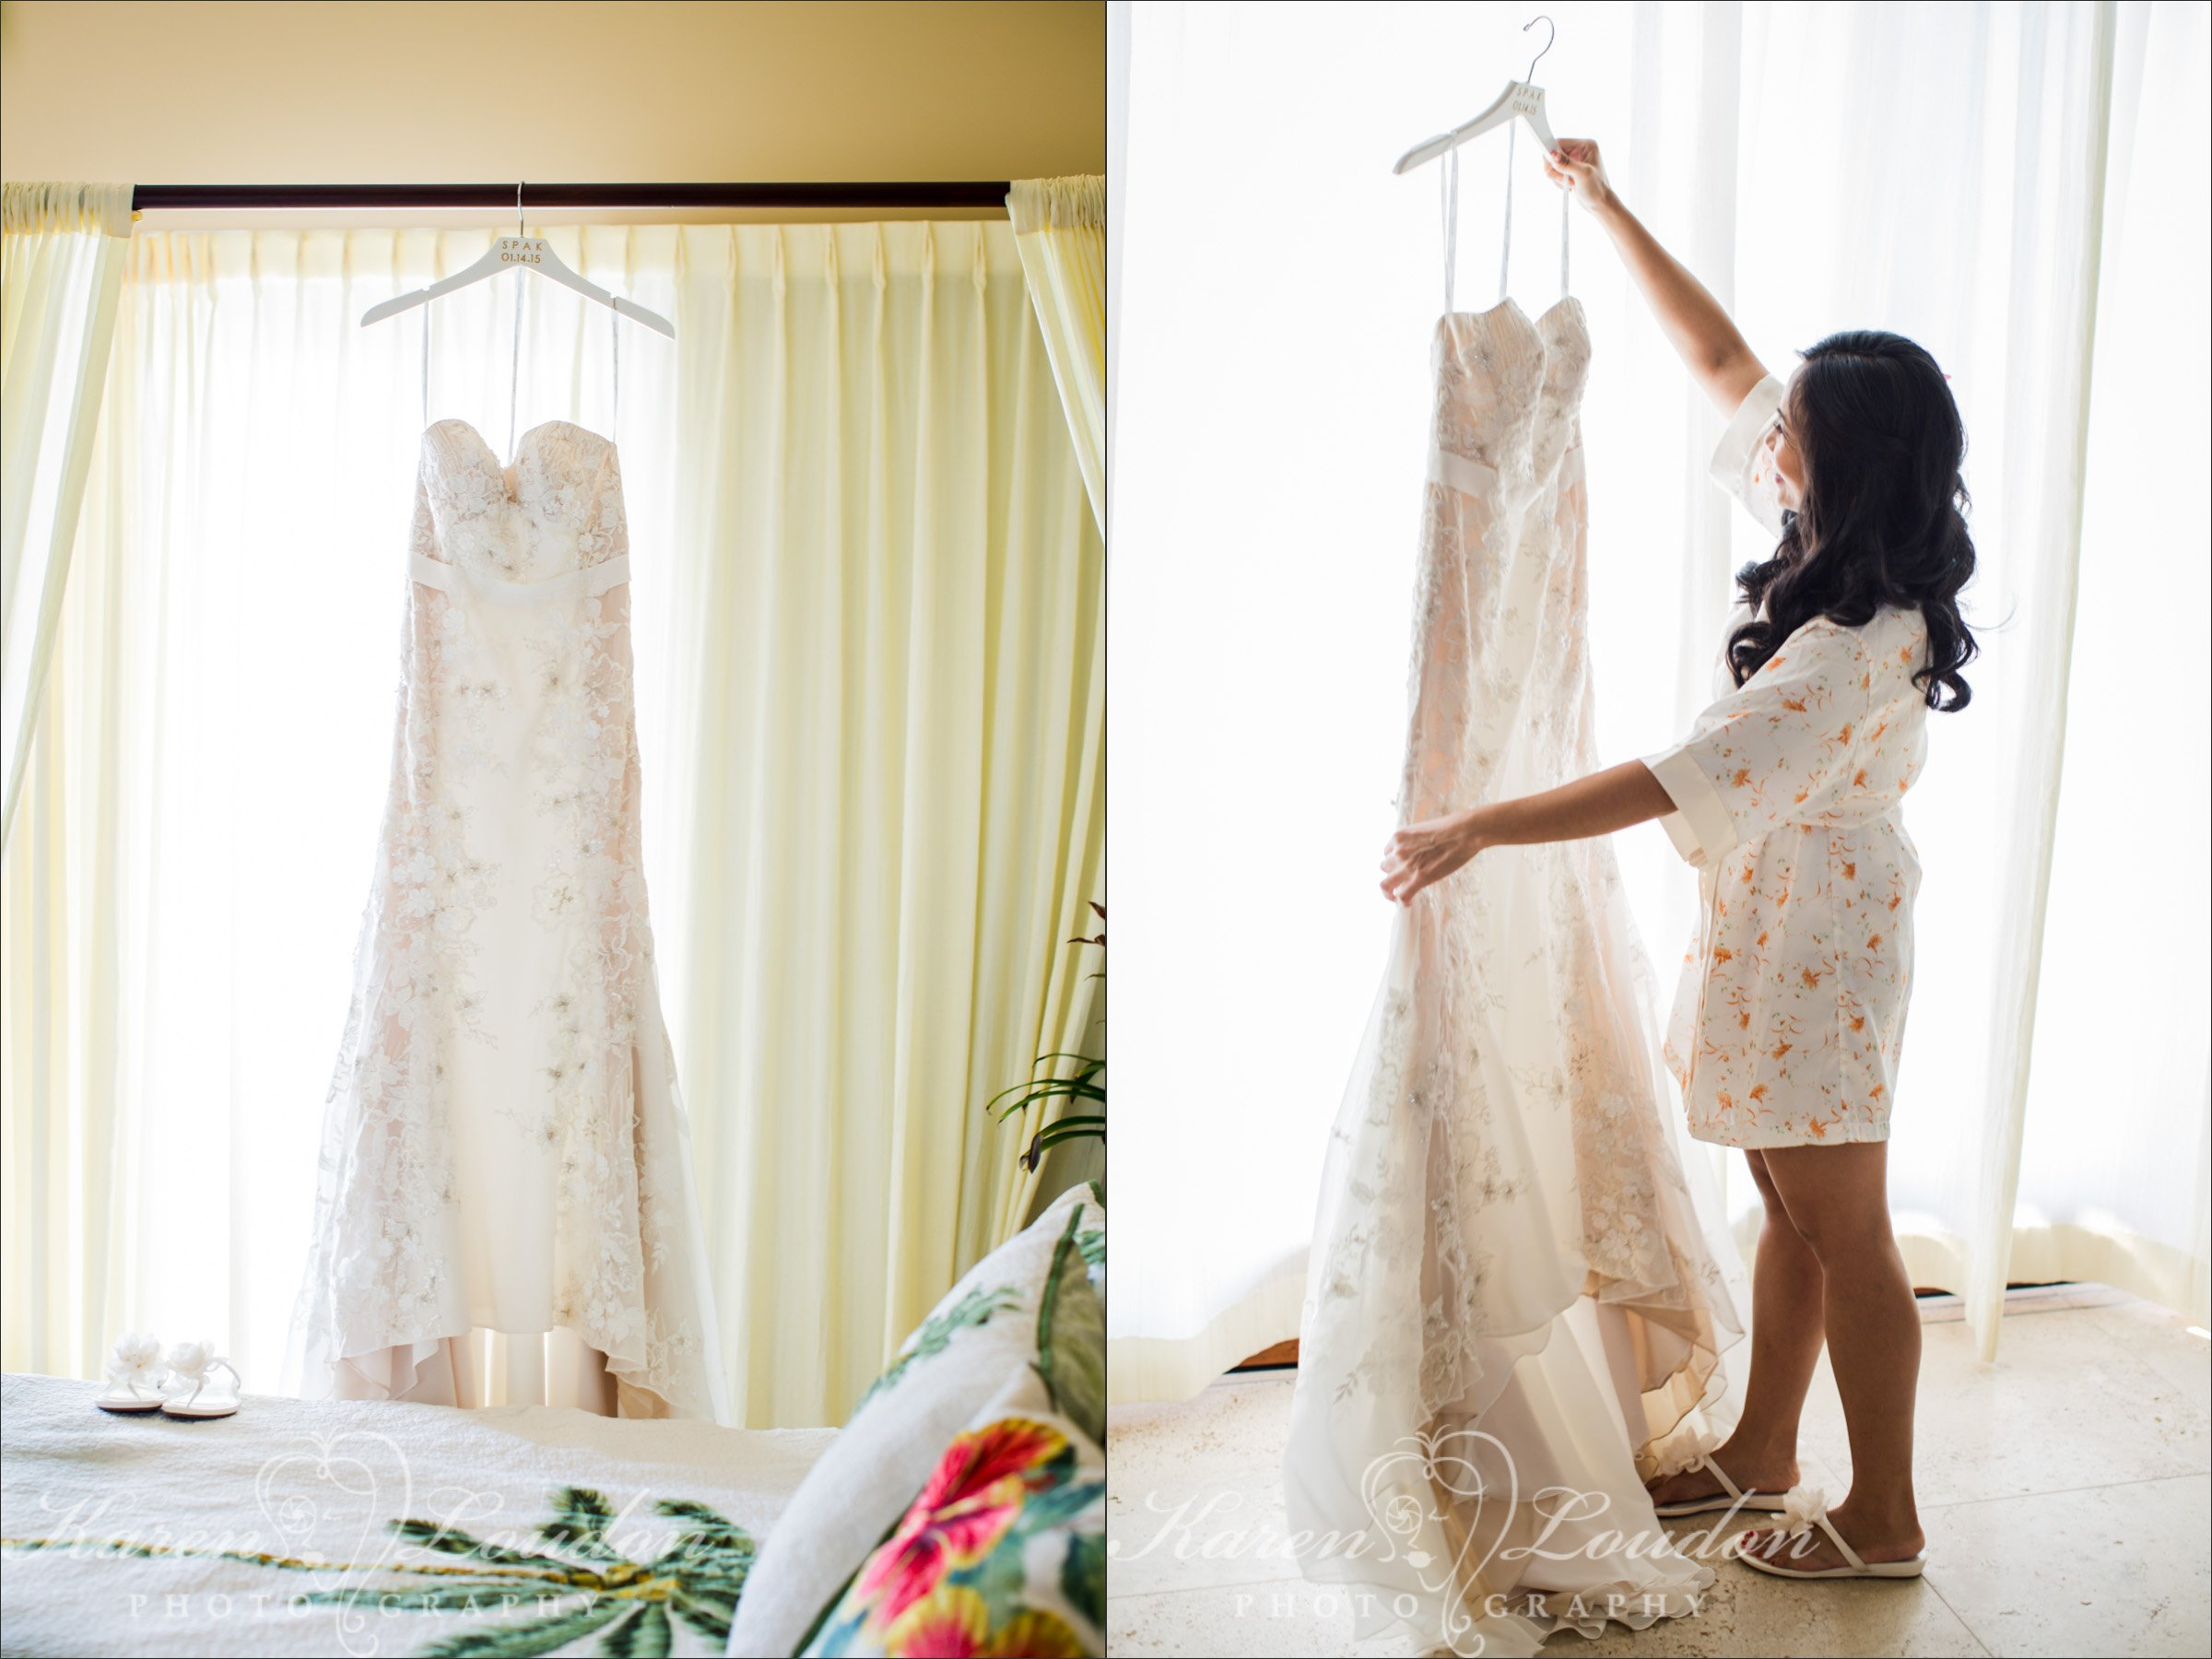 Kailua Kona Big Island Wedding Dress Photographer